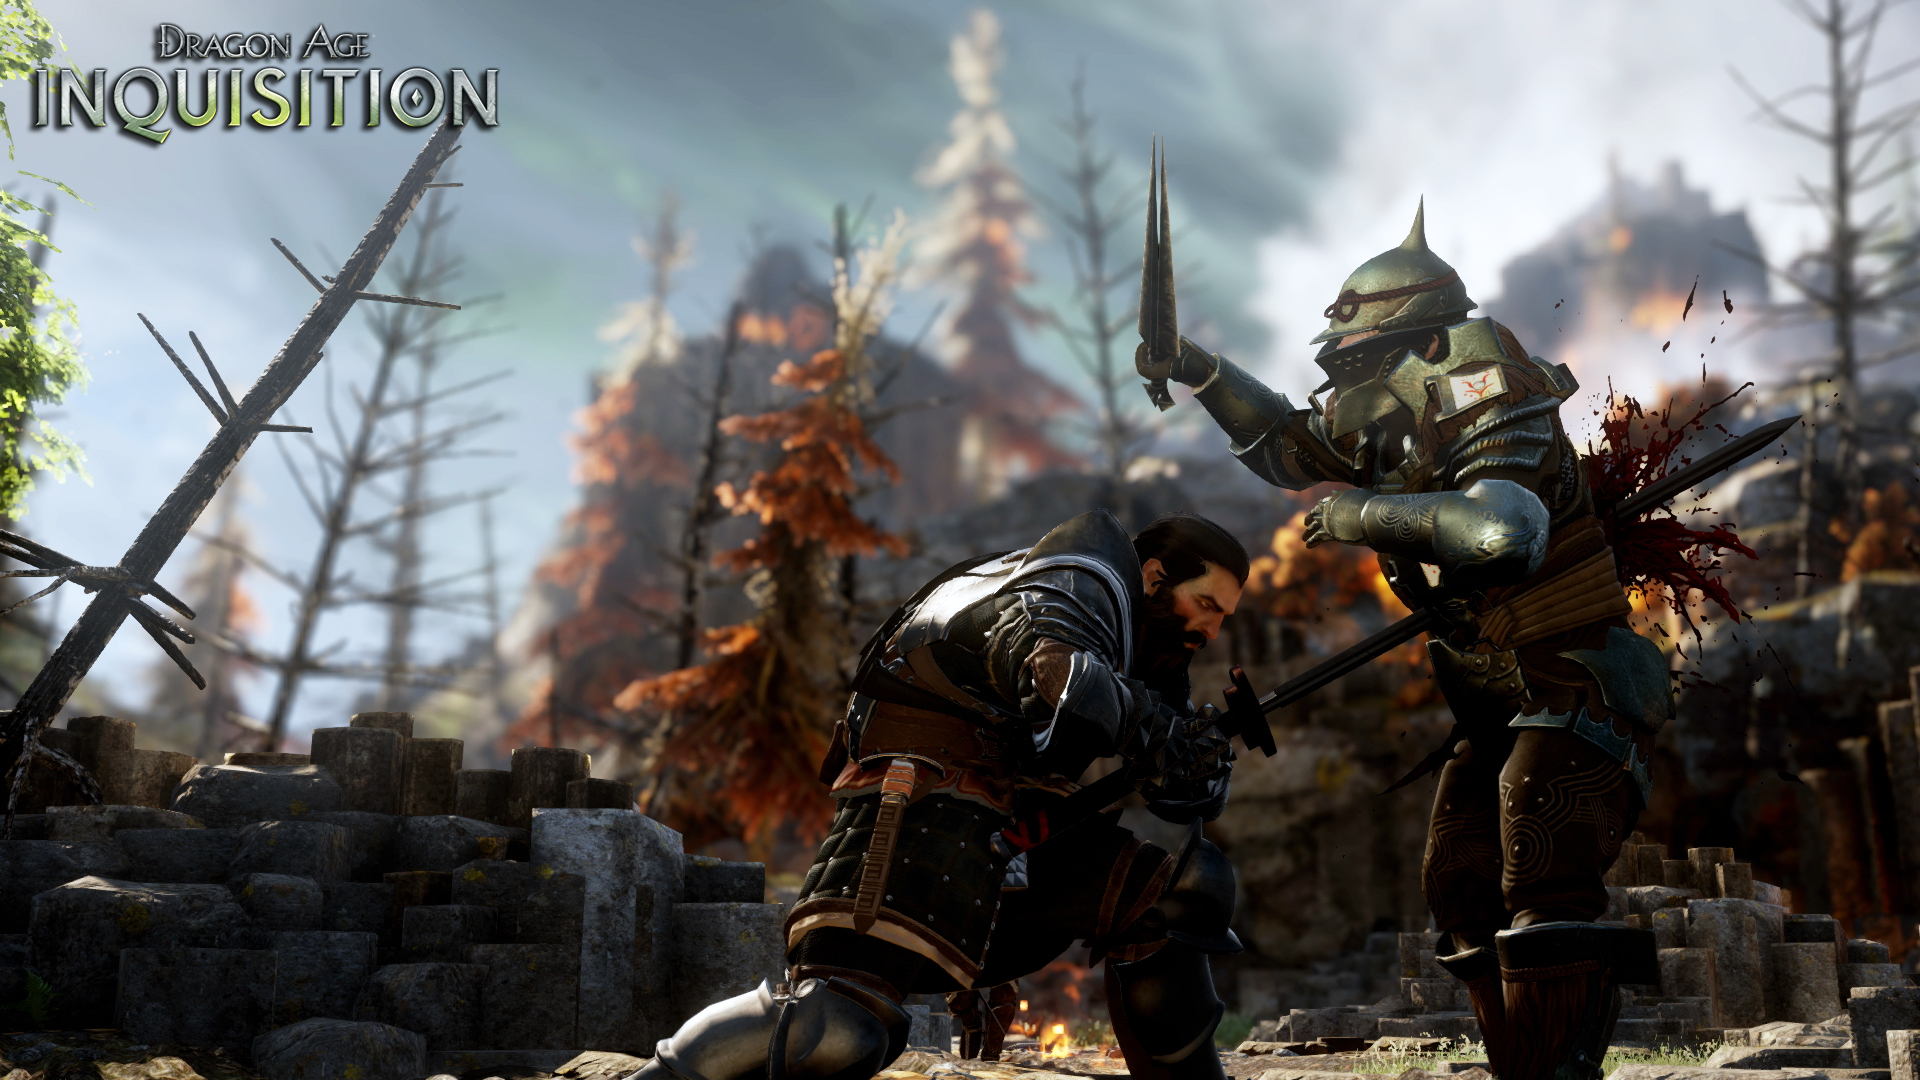 dragon inquisition age gameplay vg247